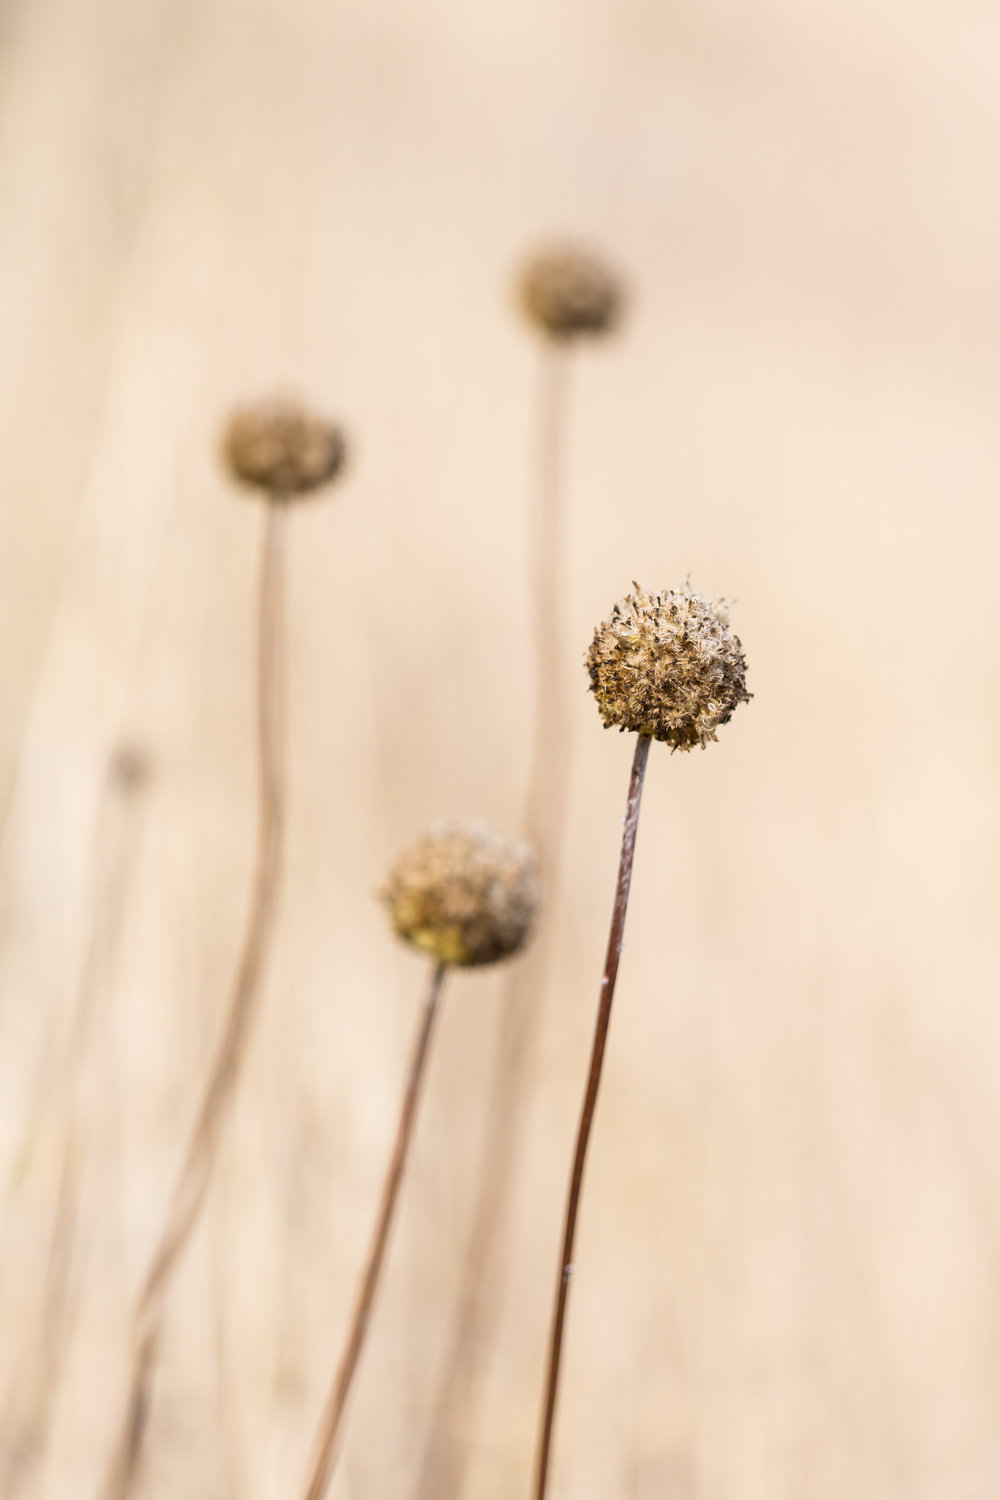 Dry plants. Country New South Wales.